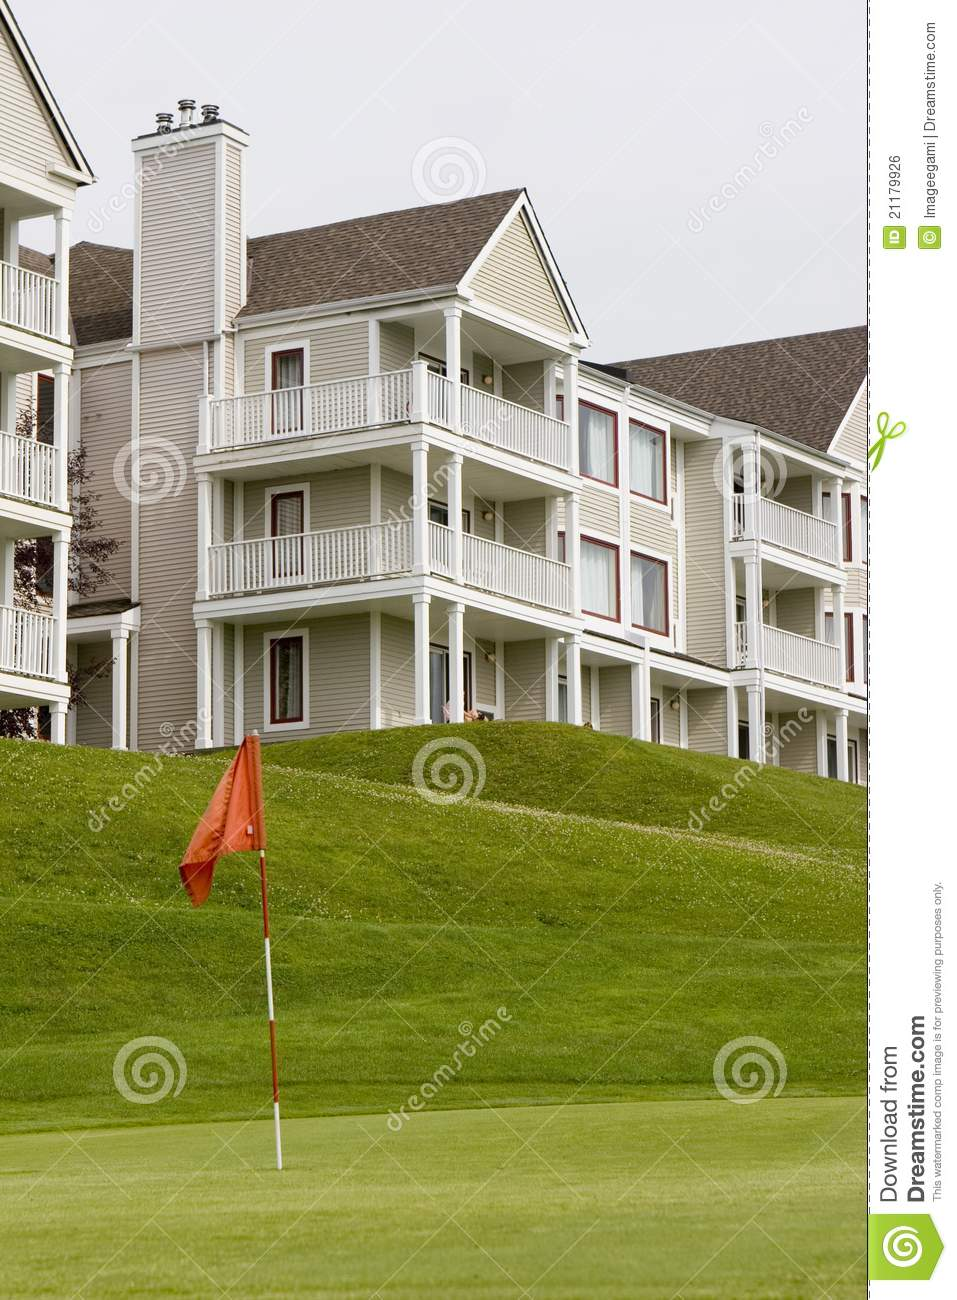 Hotel with Golf Course